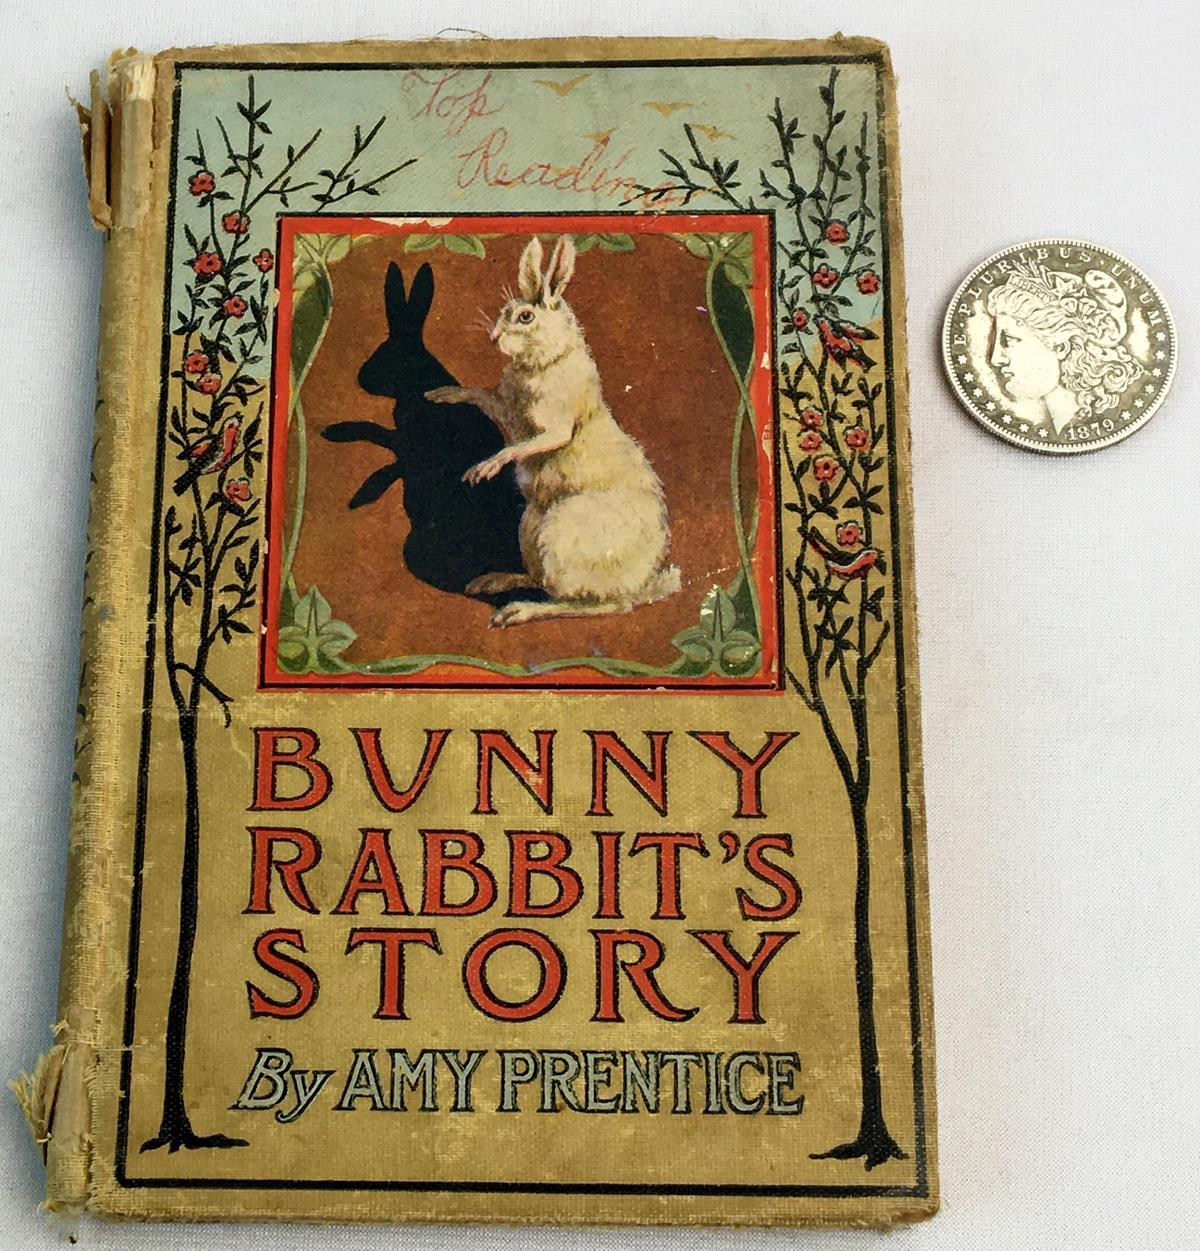 1906 Bunny Rabbit's Story by Amy Prentice Illustrated FIRST EDITION